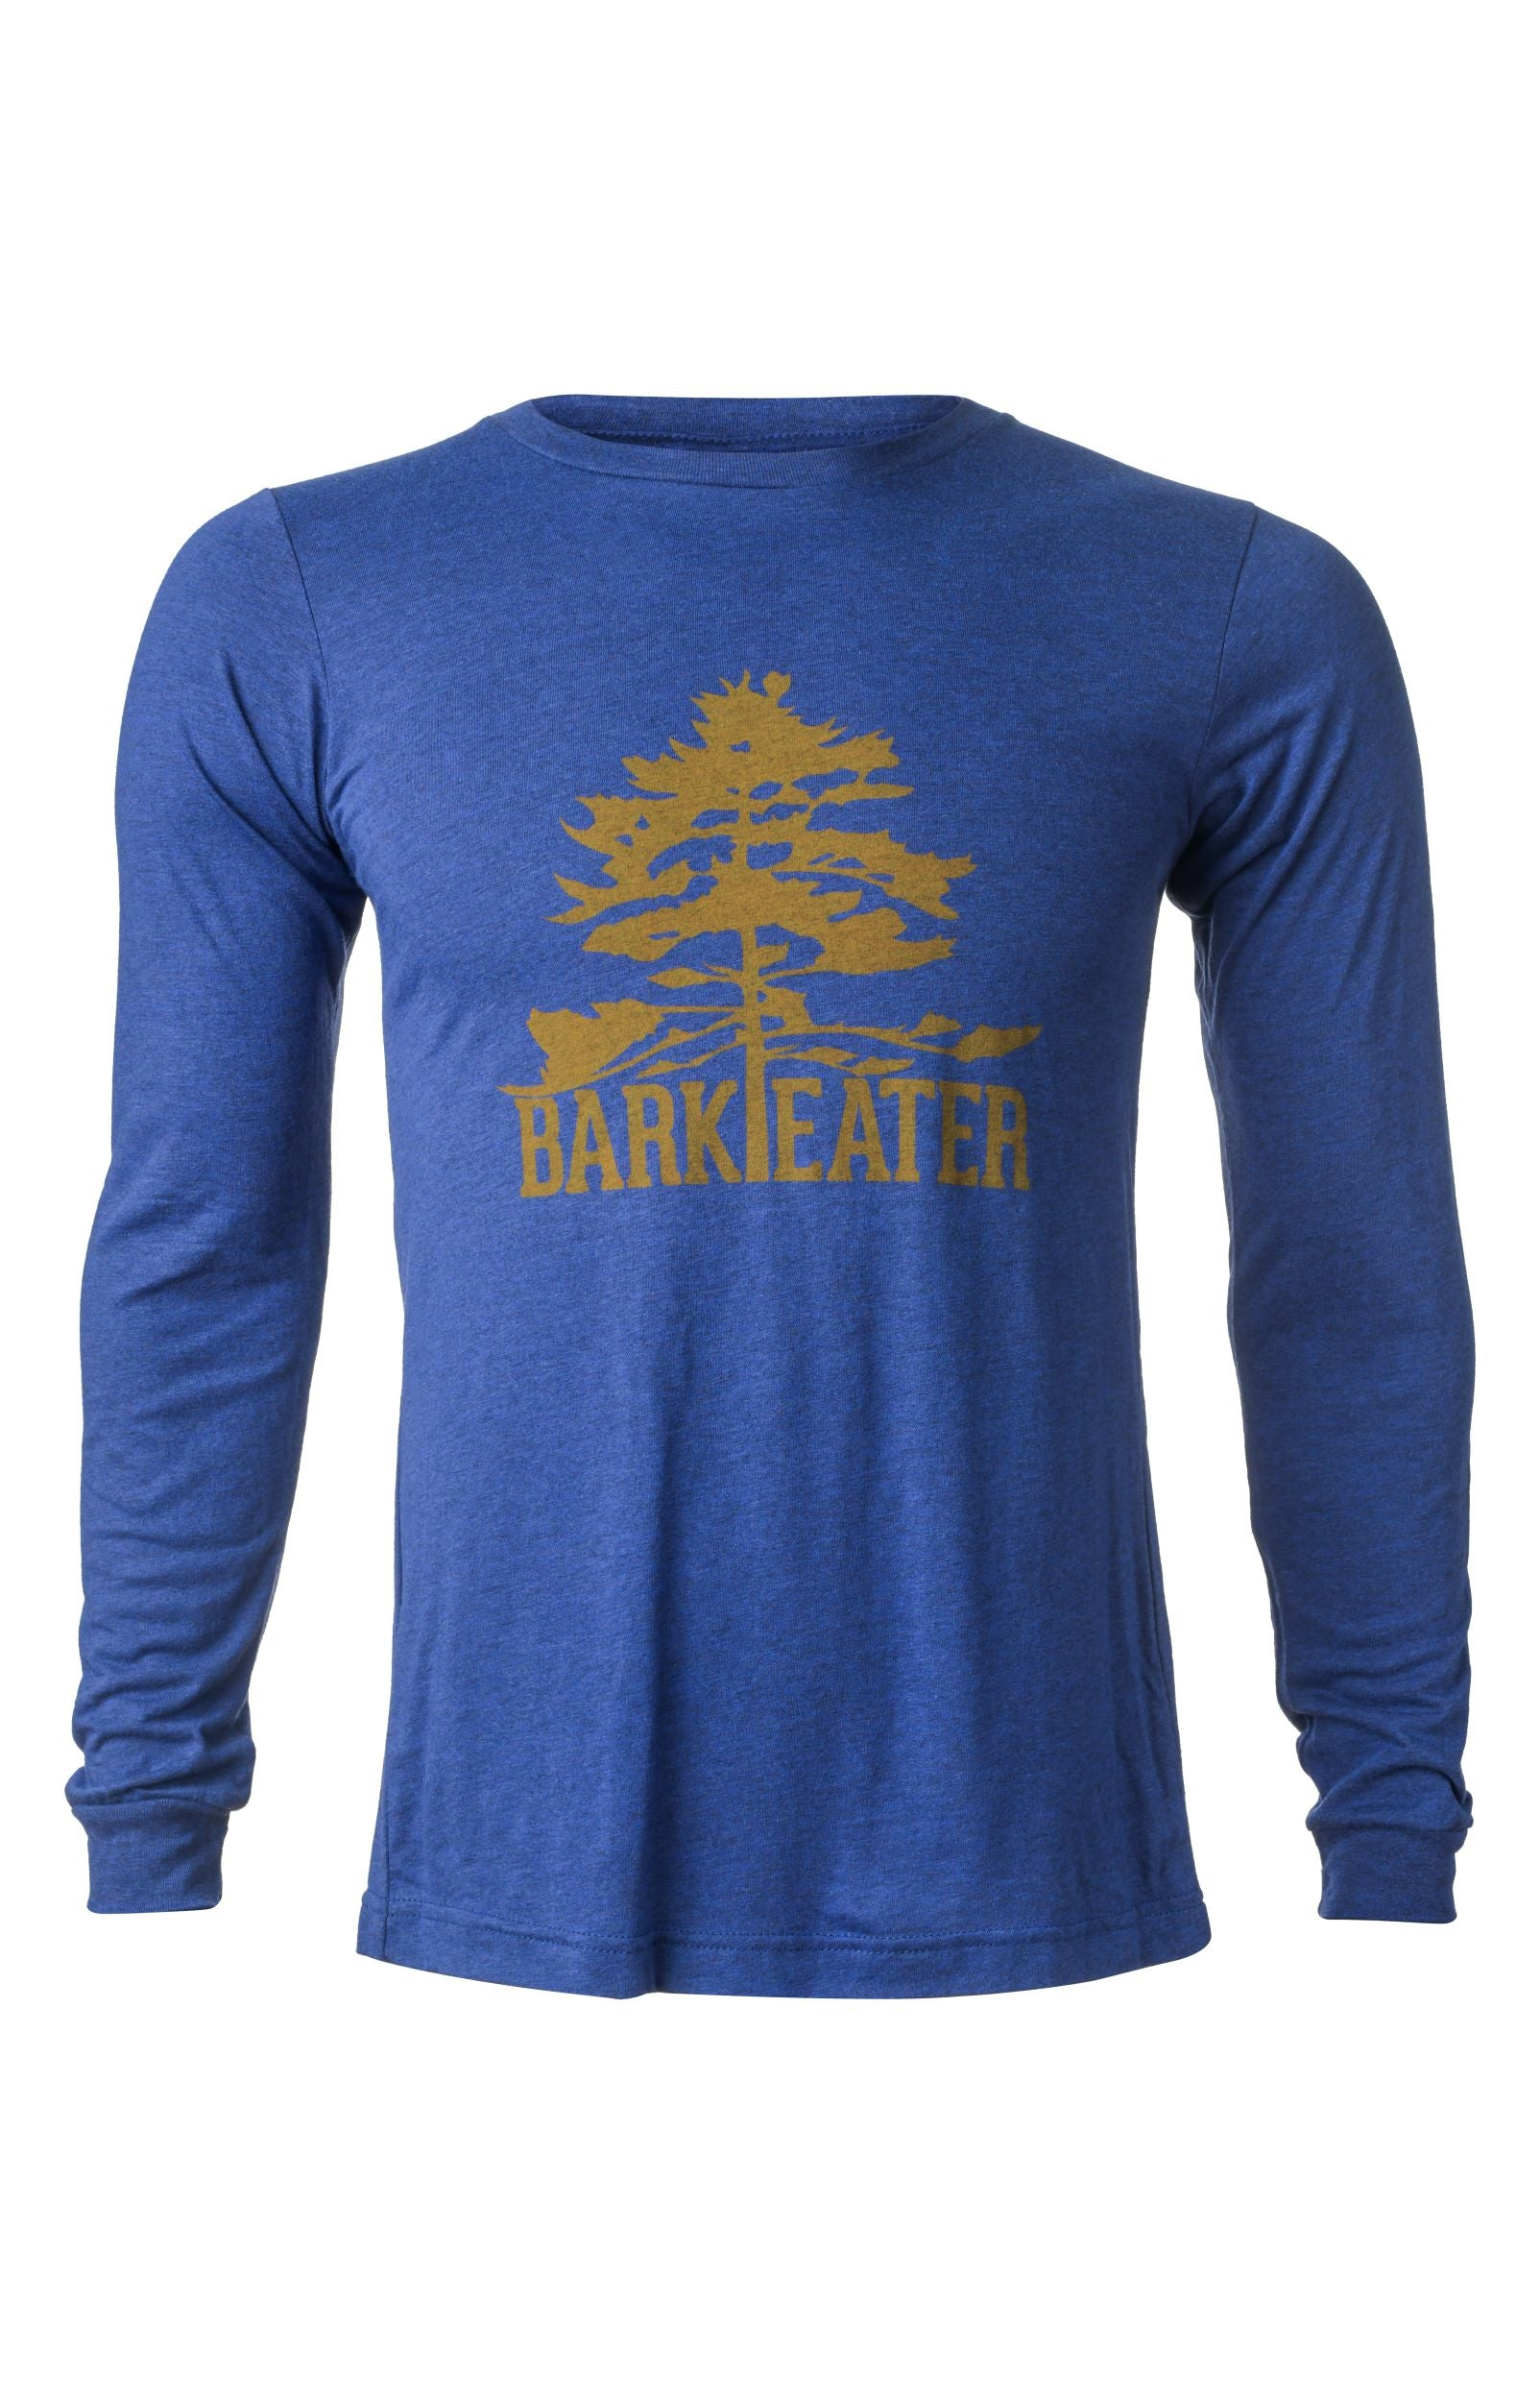 The Bark Eater Navy Long Sleeve Shirt